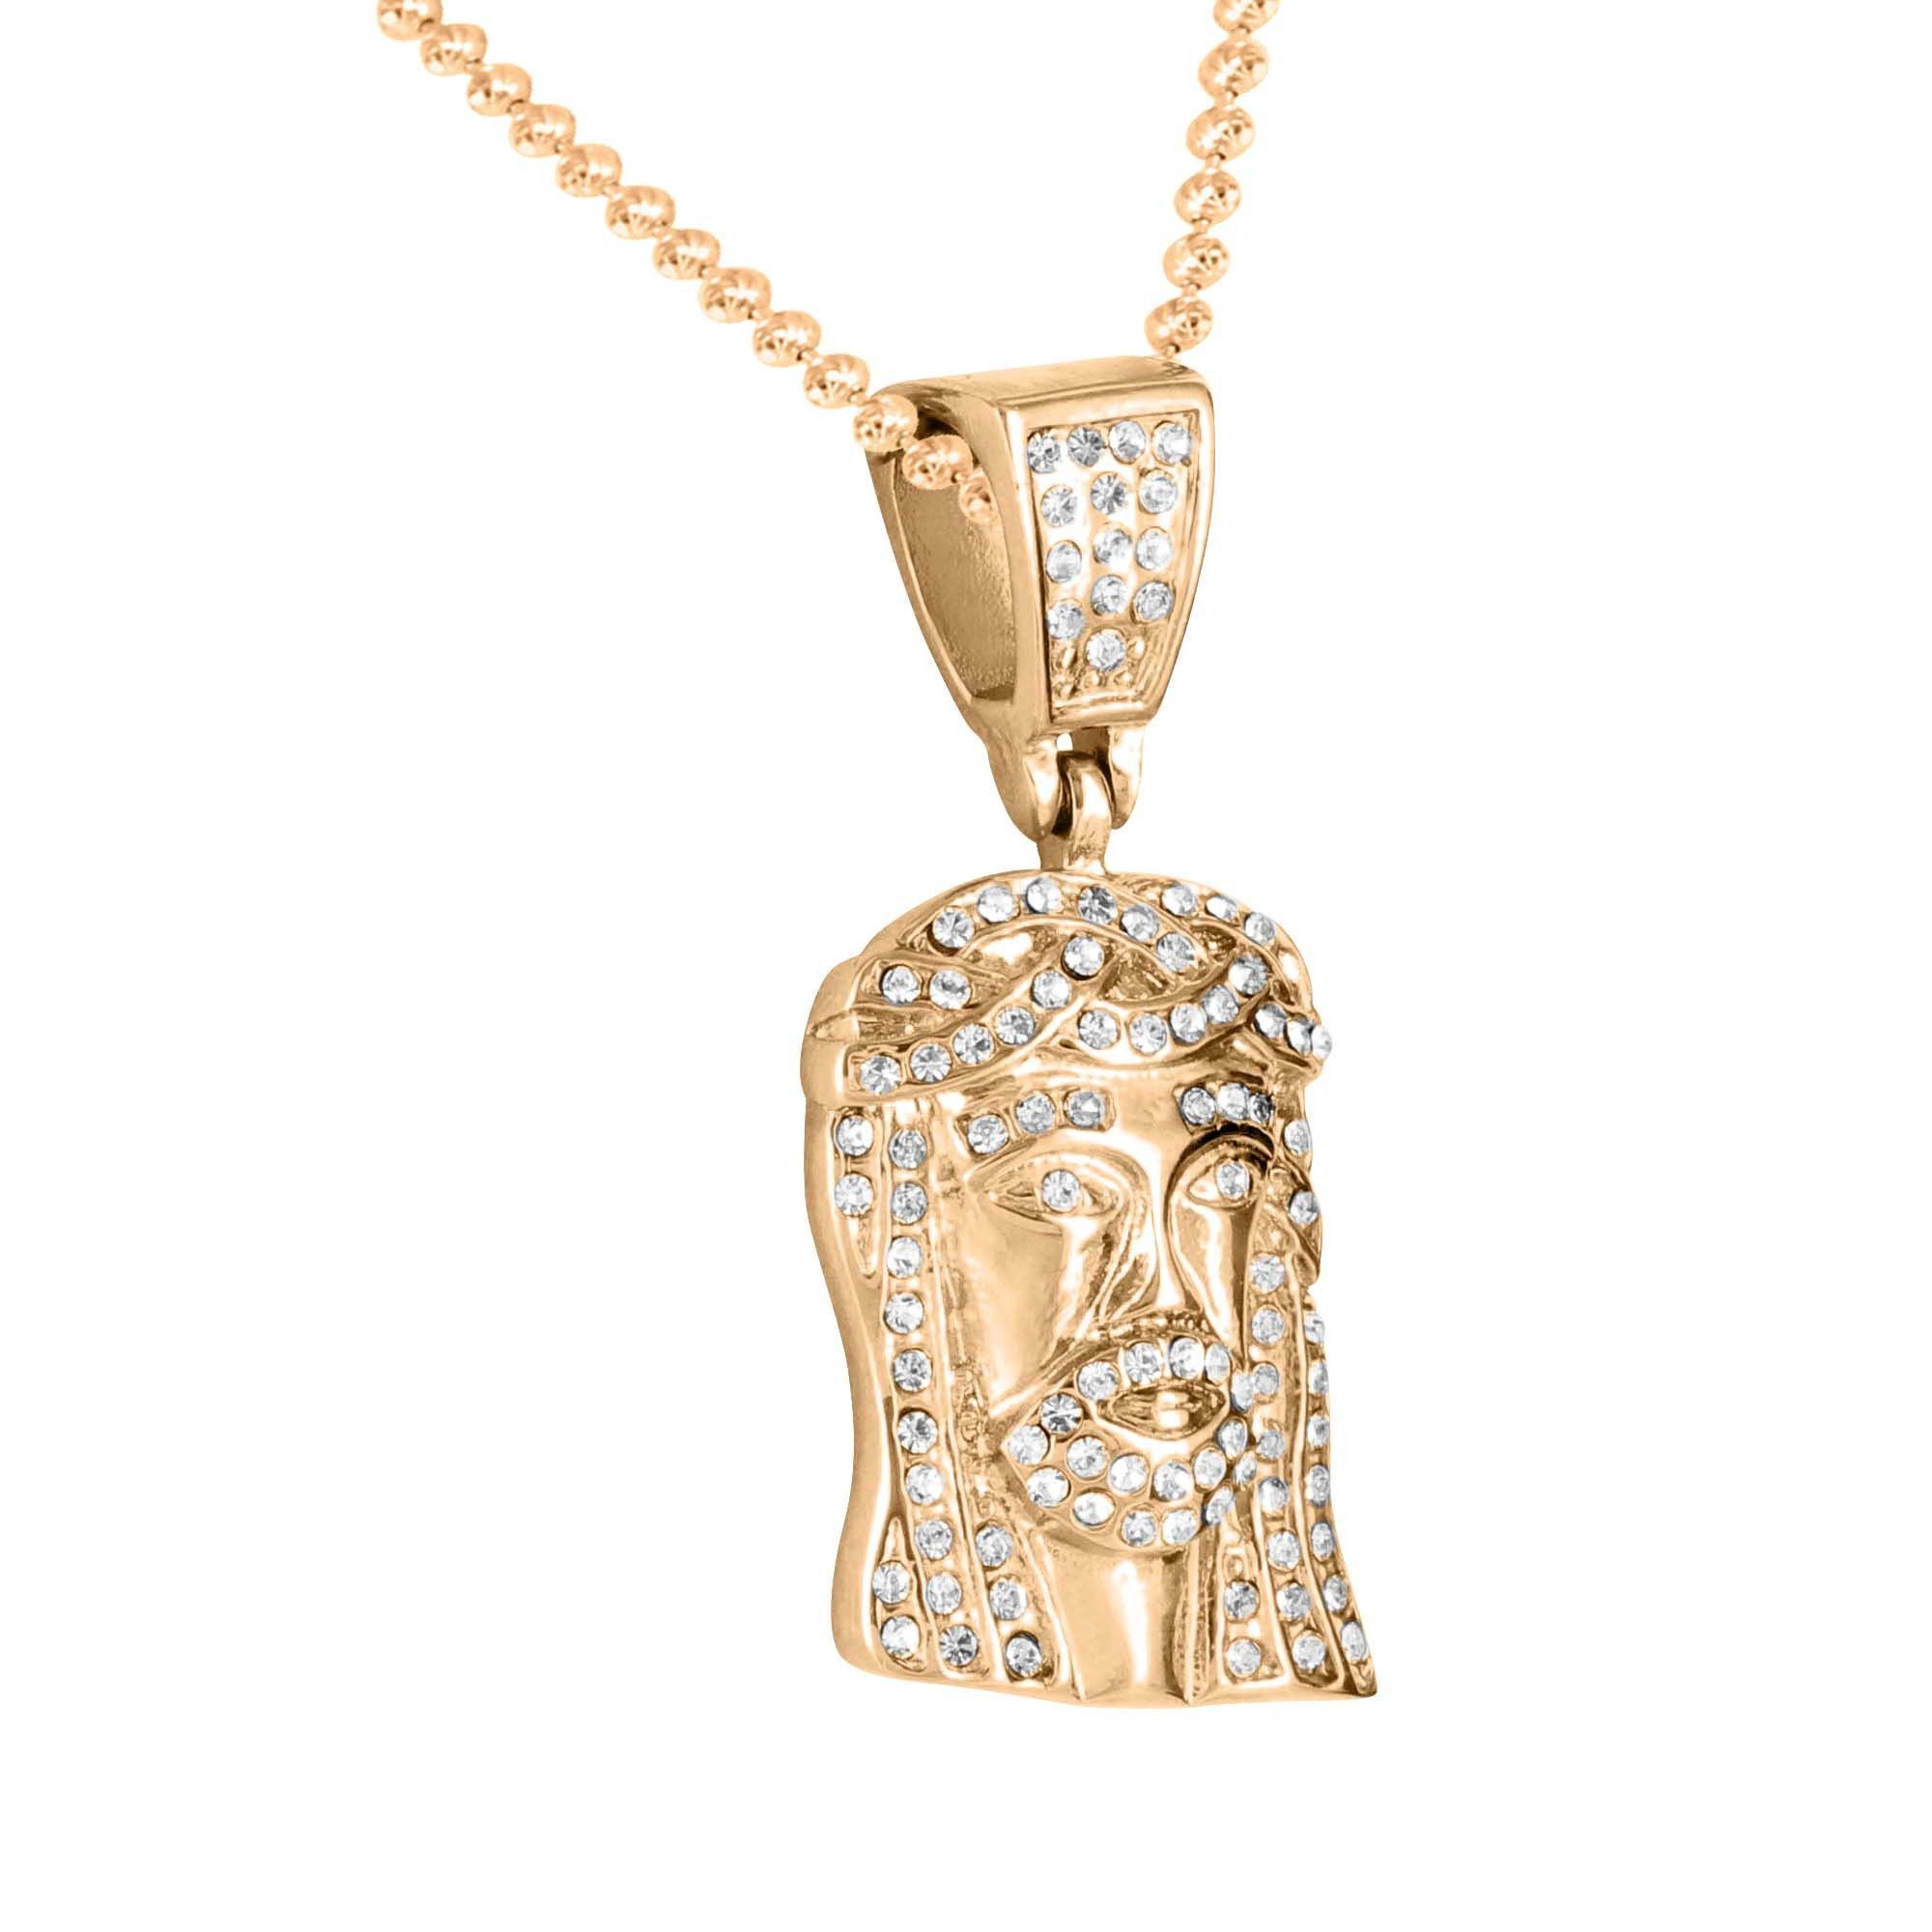 jewelrysmall wholesale chain crystal iced gold product lab plated out pendant white micro simulated jesus hop diamond hip necklace size mini